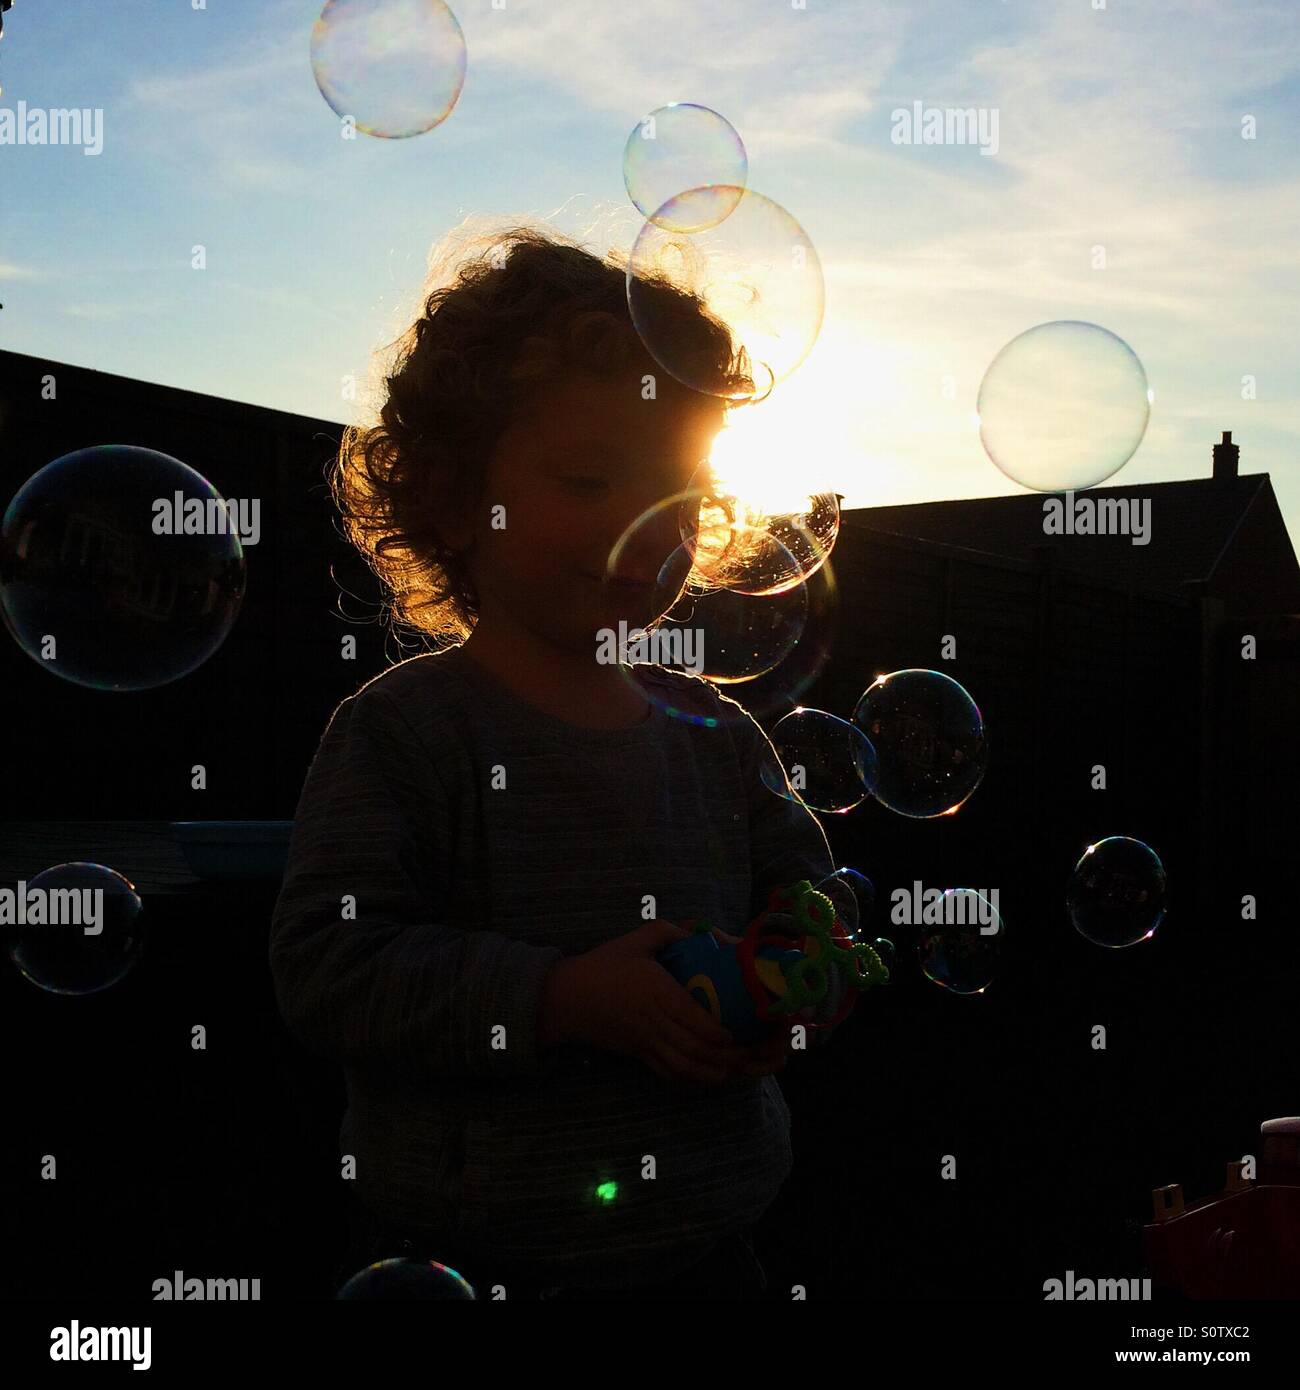 Silhouetted child playing with bubbles in garden - Stock Image